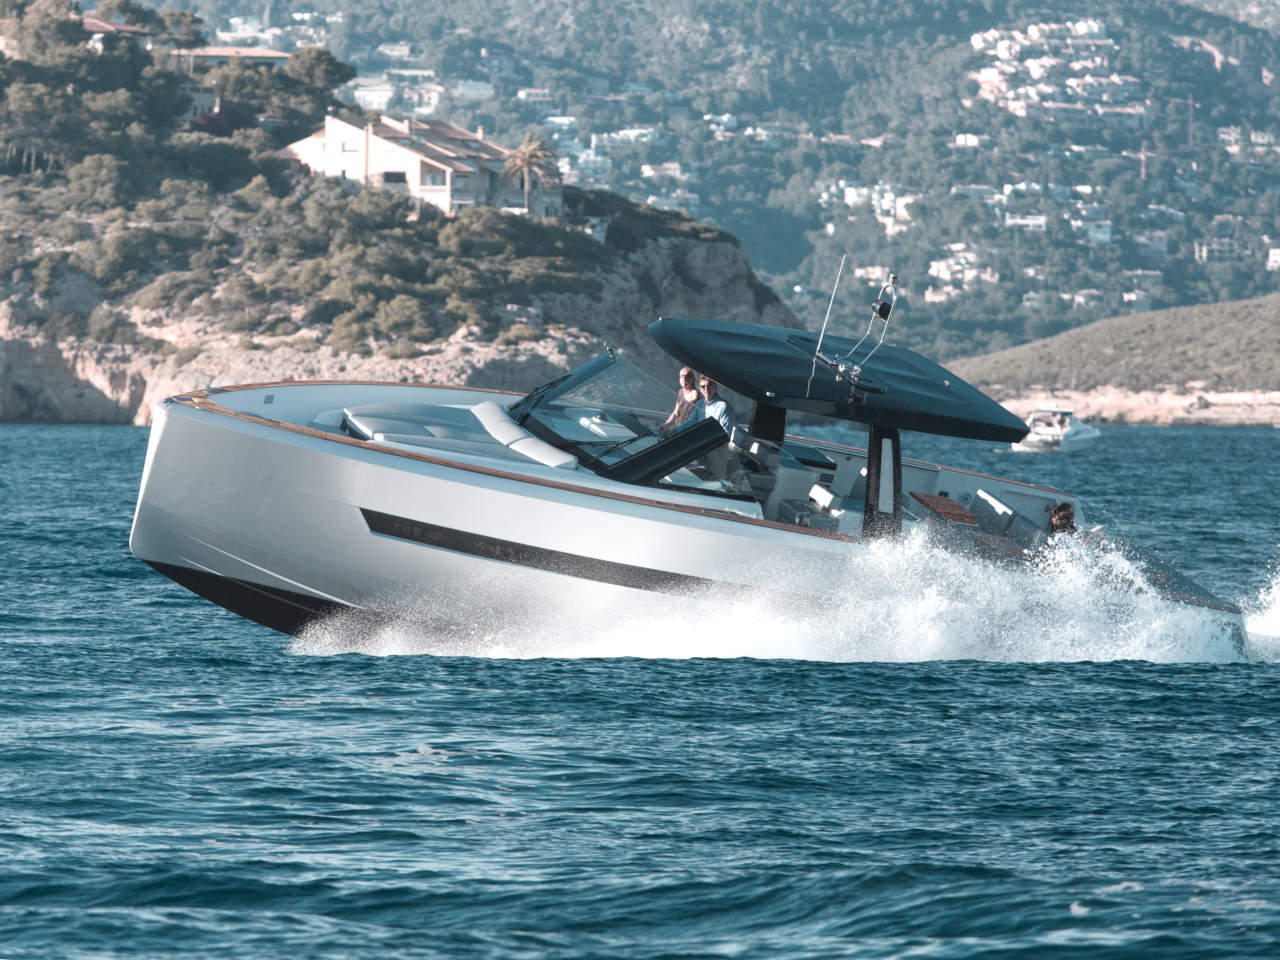 With the Fjord 48 Hanse has positioned itself in the market for upscale powerboats. Photo courtesy of Hanseyachts.